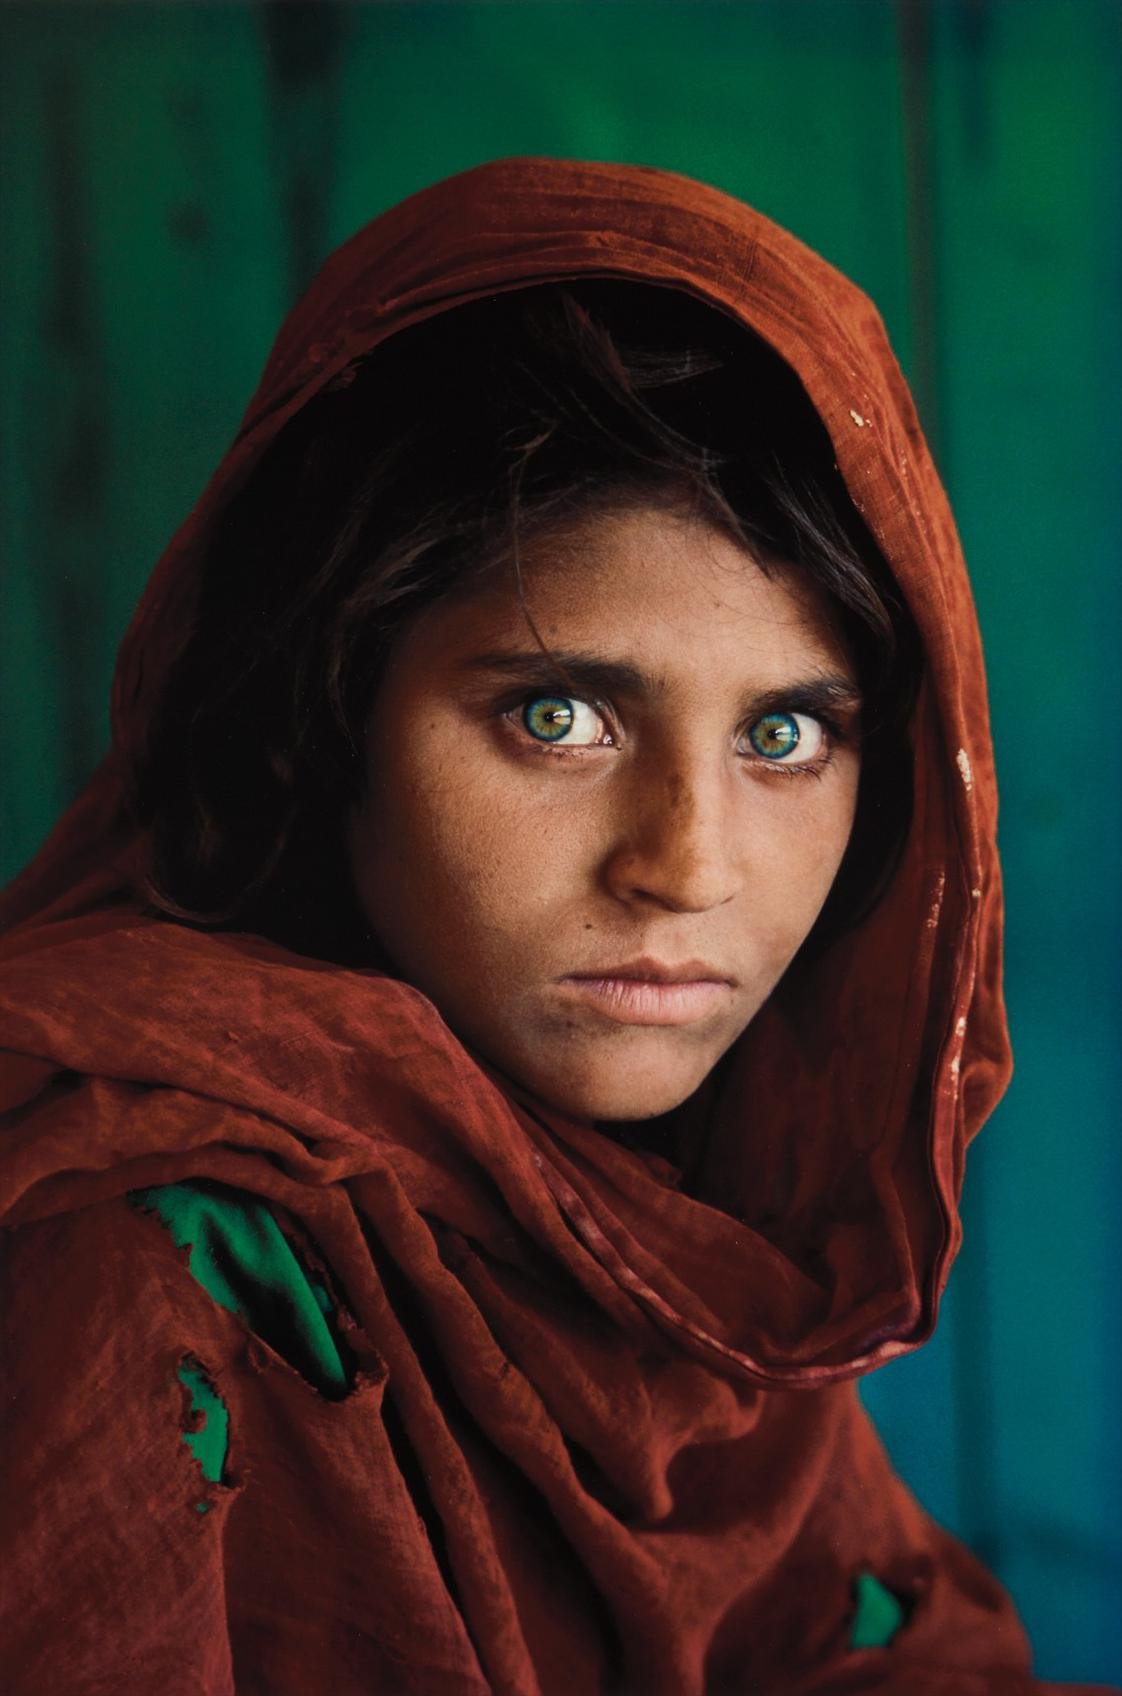 Steve McCurry-Sharbat Gula, Afghan Girl, Pakistan-1984